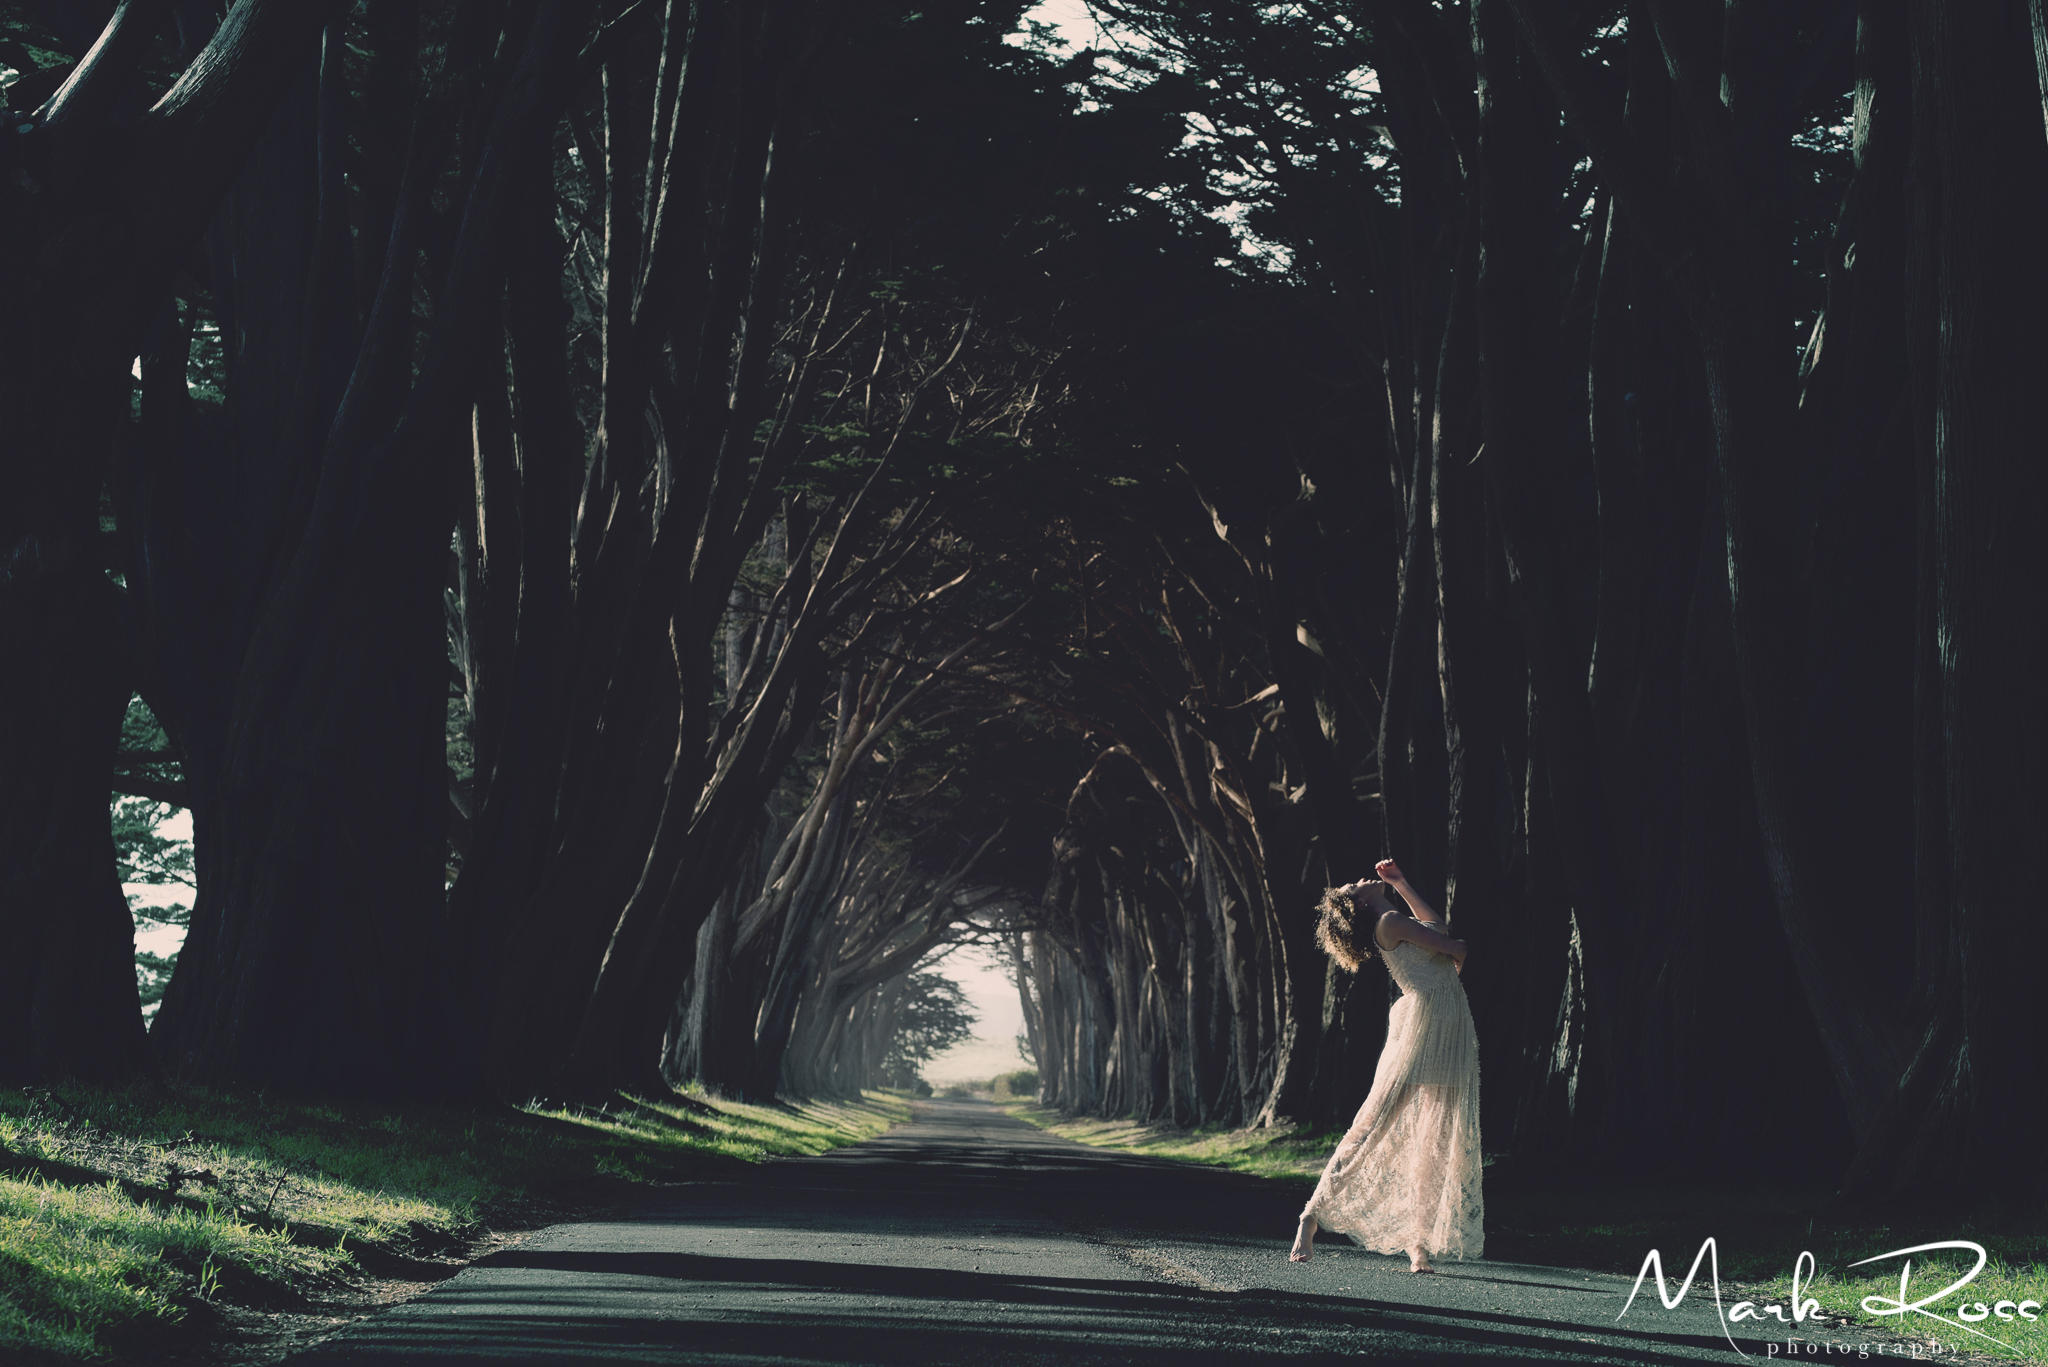 The Cypress Tree tunnel earlier this year...also magical.